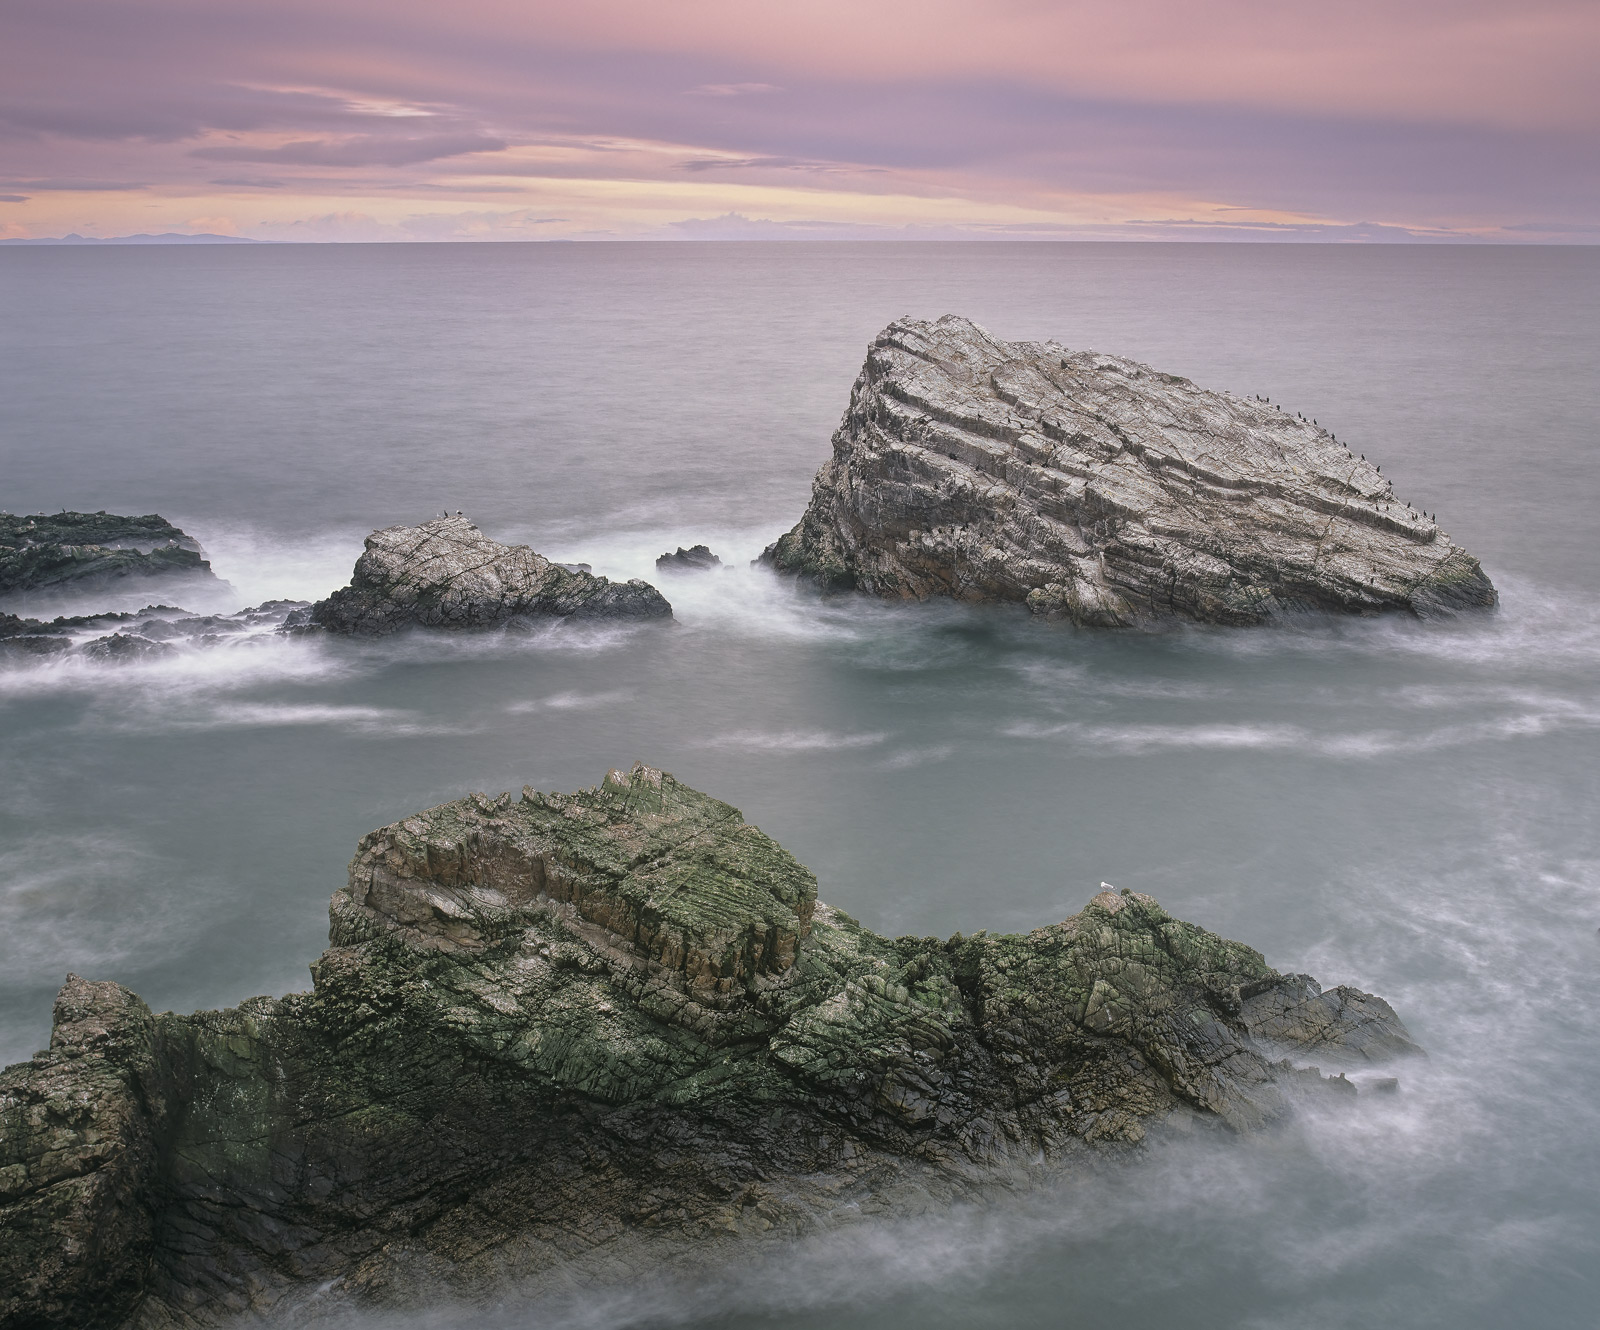 A pink sky slowly melted into the grey clouds that hung over the Moray Firth so I photographed the impressively angular rocks...